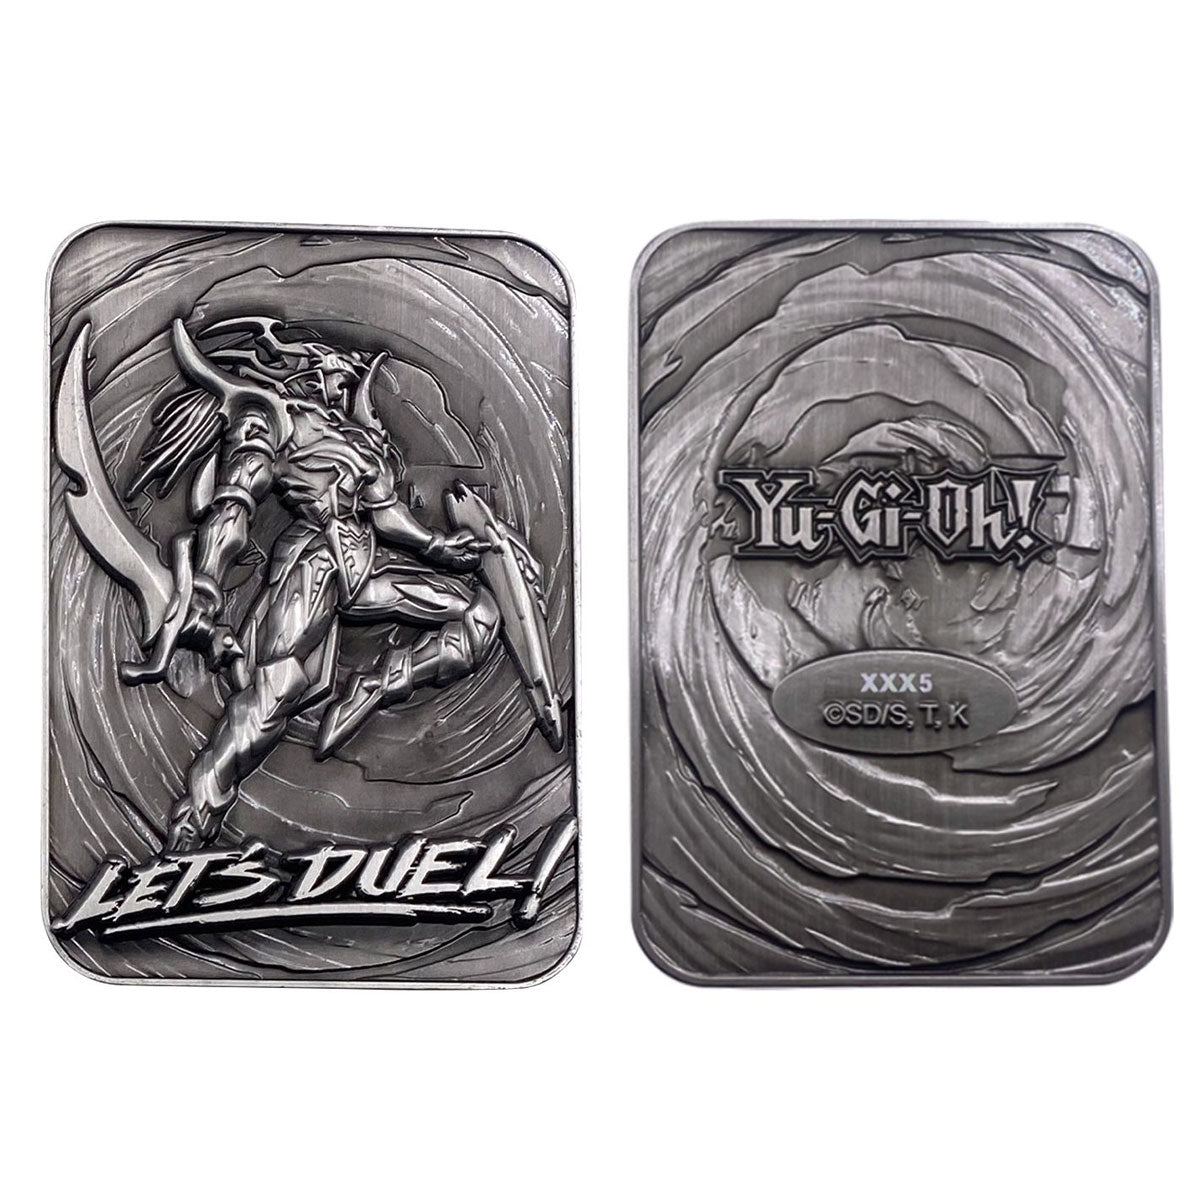 Yu-Gi-Oh! Black Luster Soldier Limited Edition Collectible Card